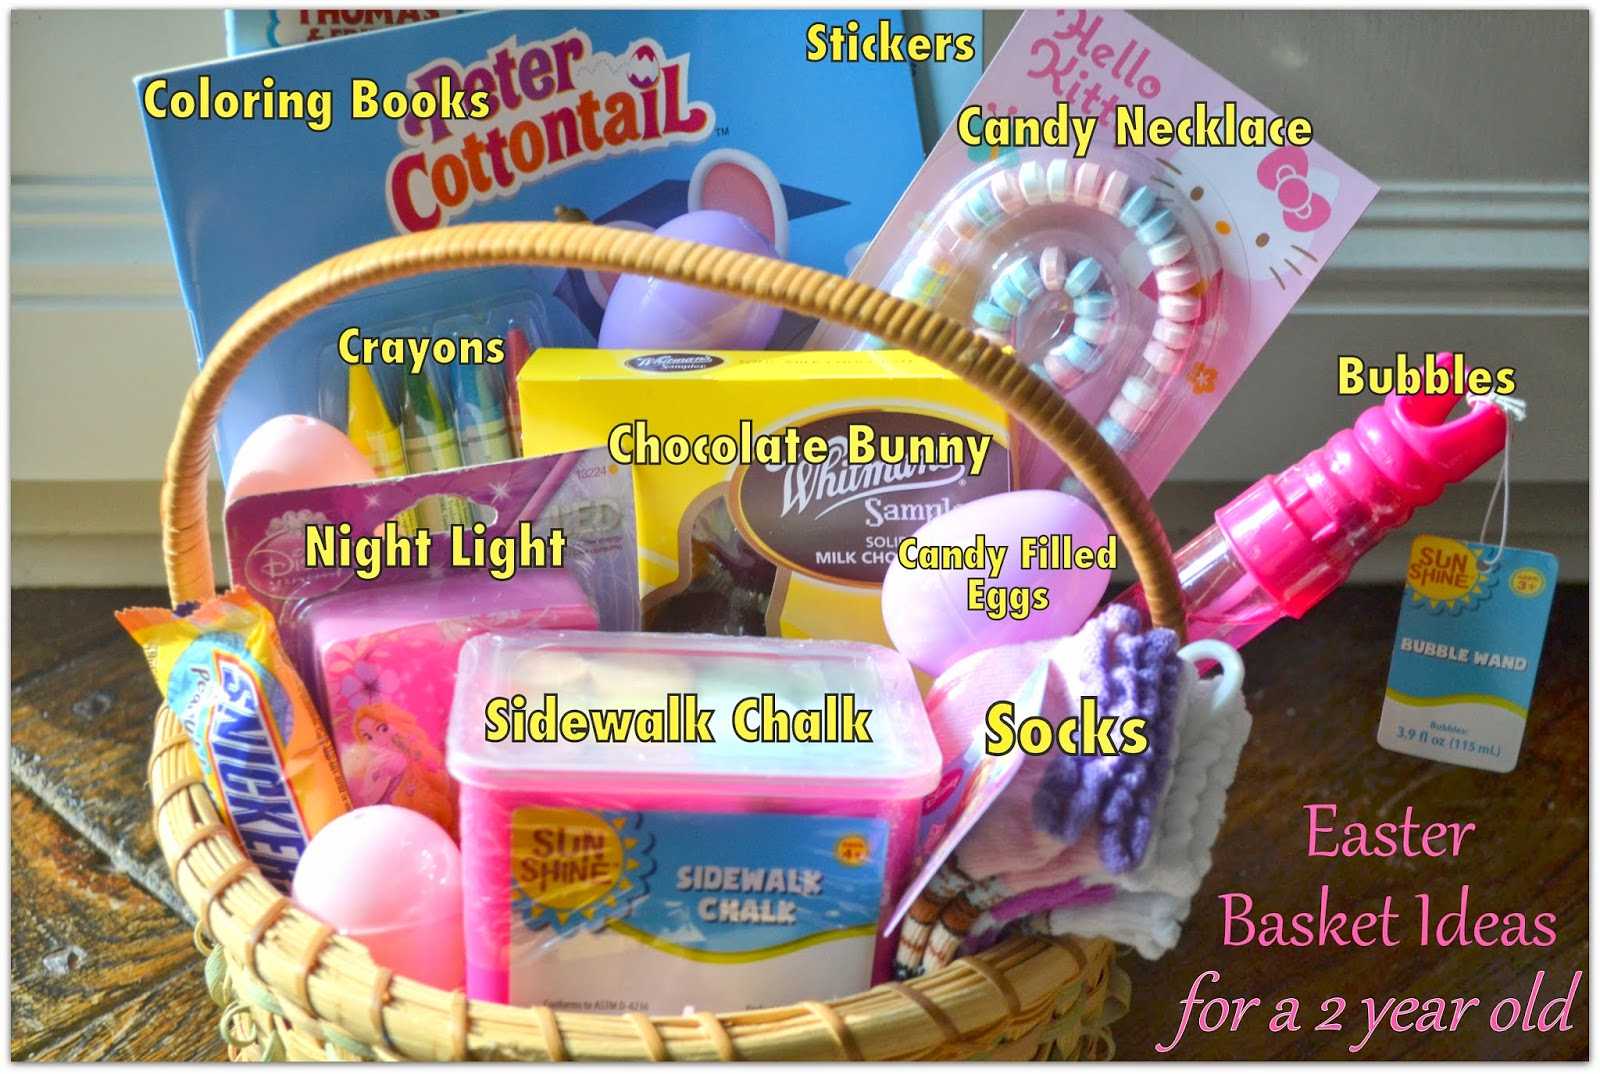 Easter basket ideas for a two year old logic laughter easter basket ideas for a two year old saturday april 19 2014 negle